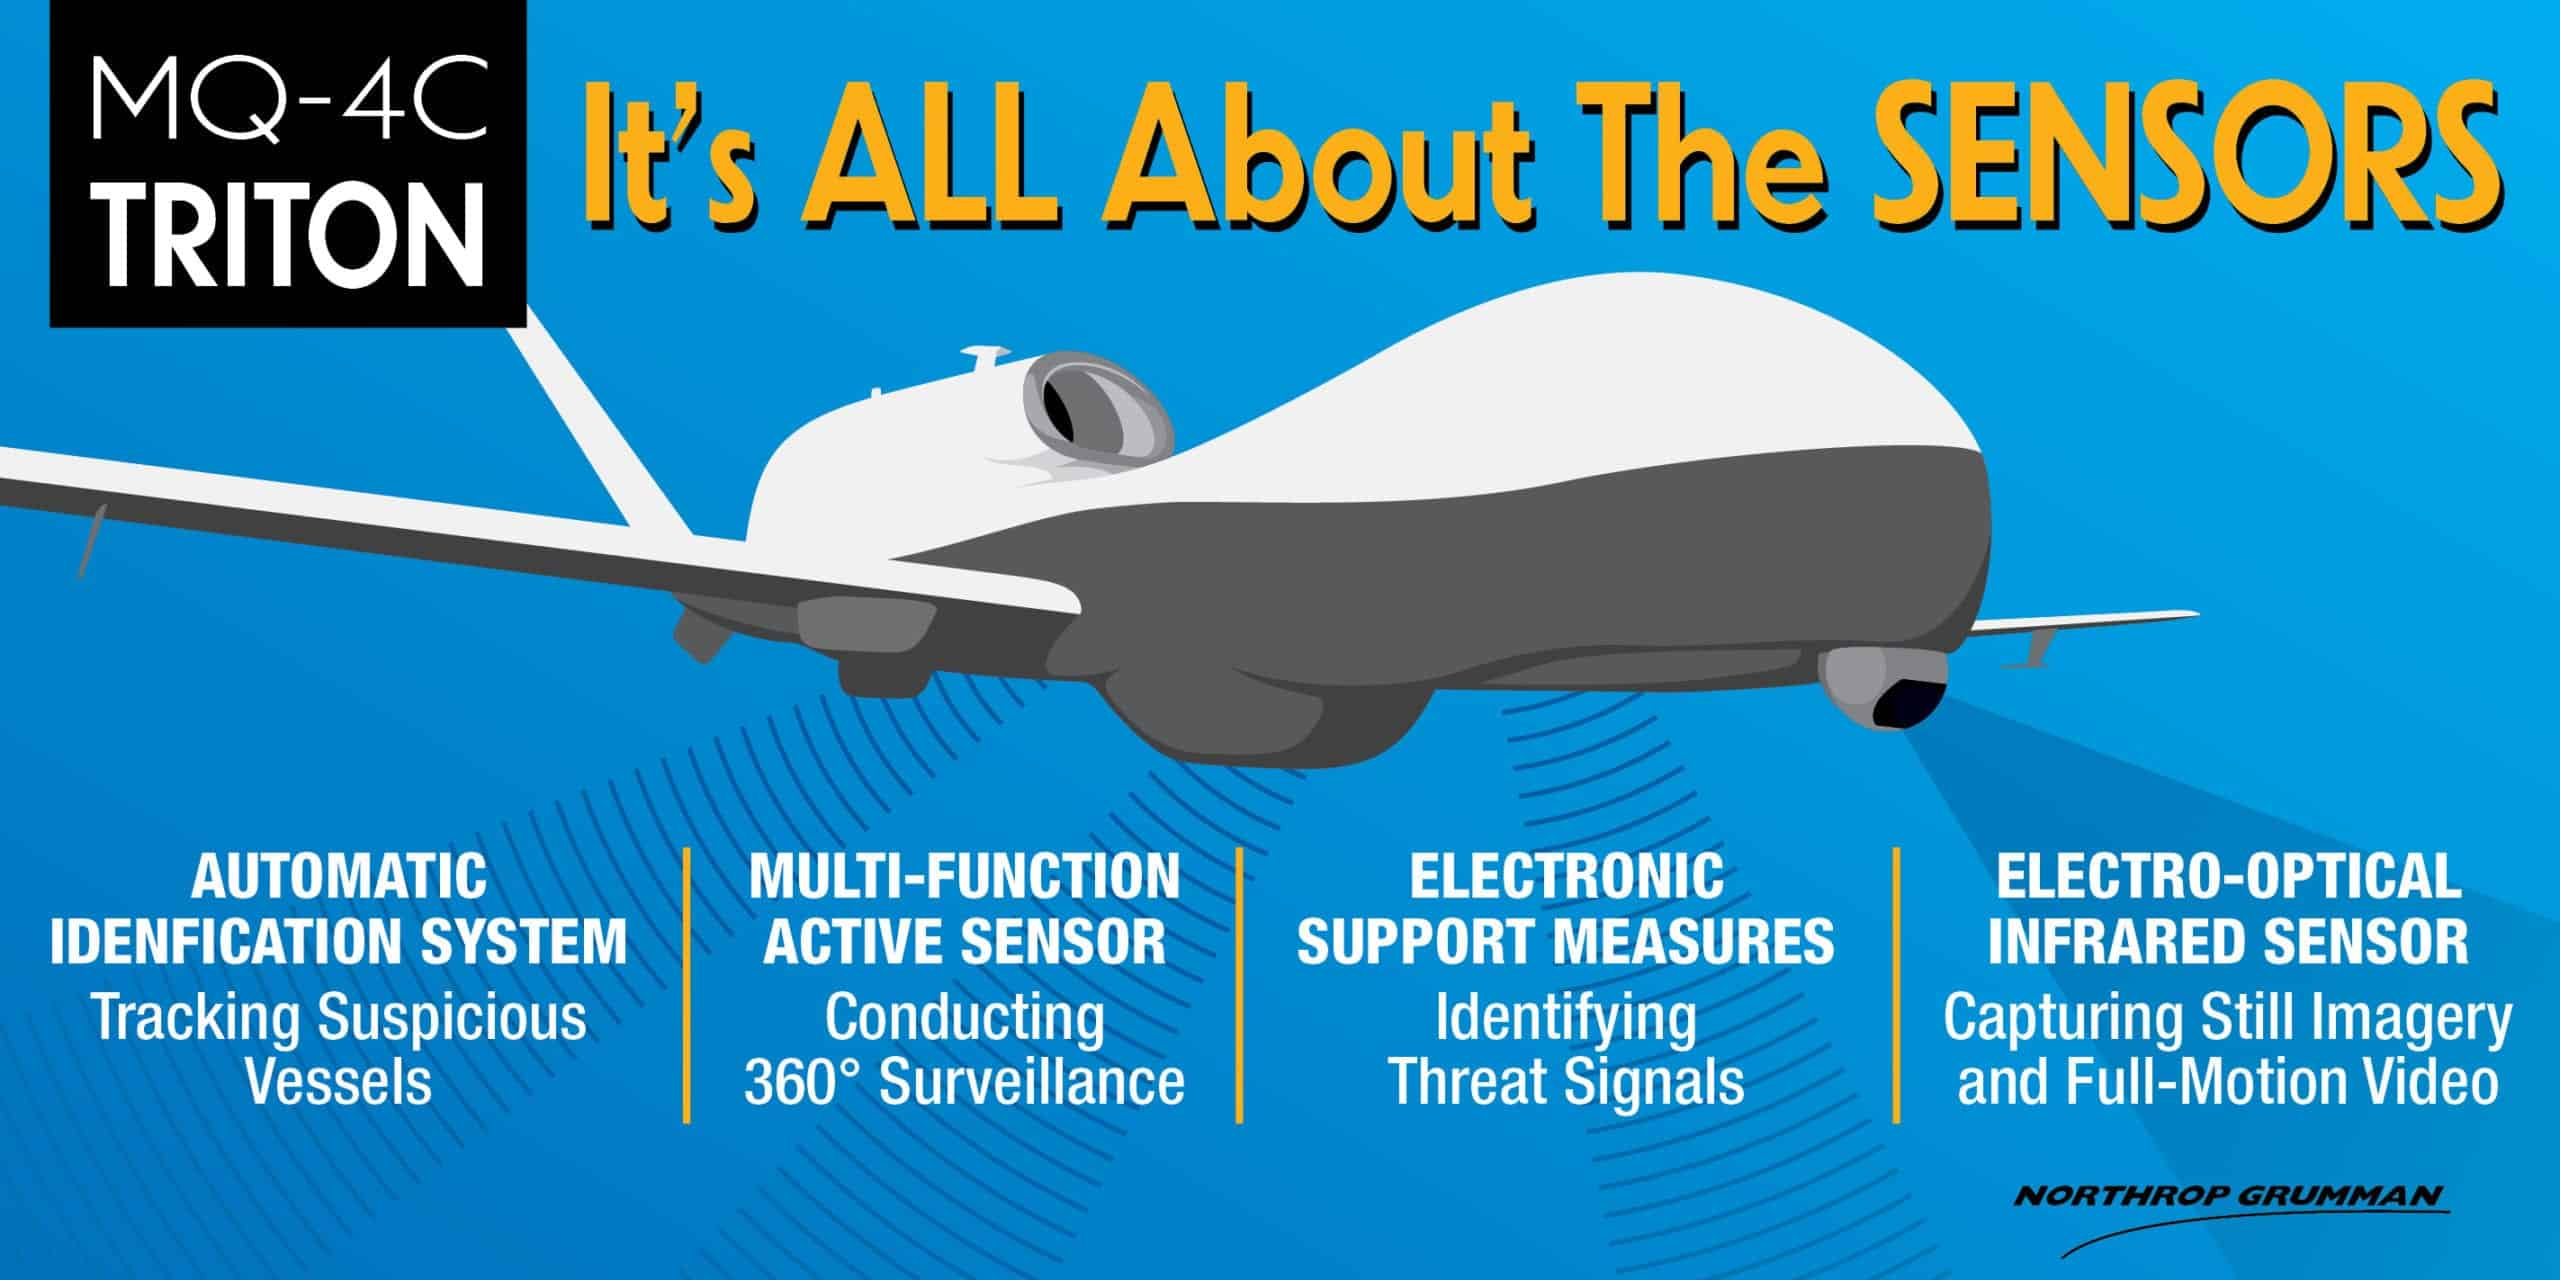 Triton UAS Infographic | Unmanned Systems Technology